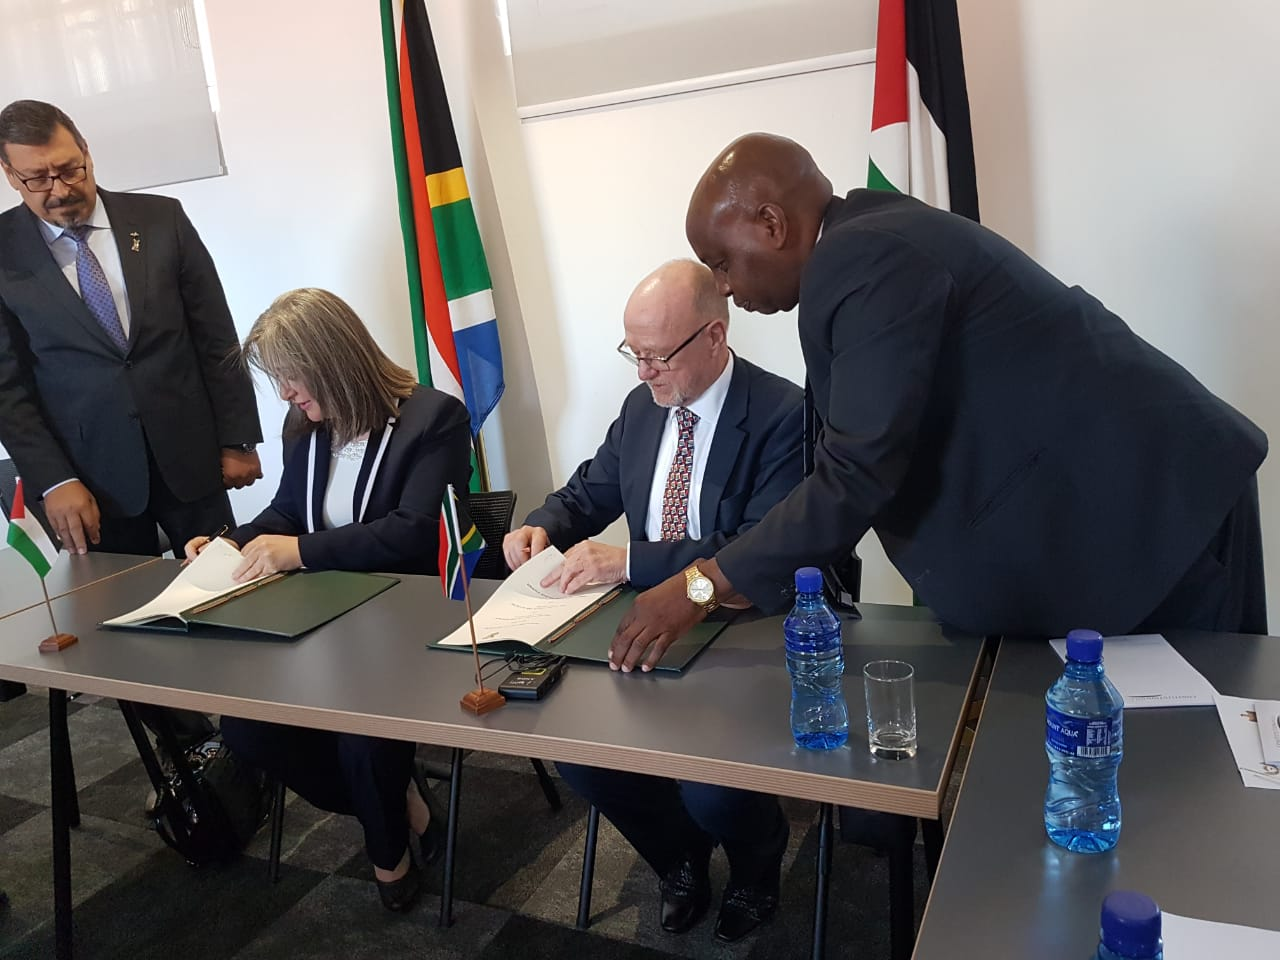 Tourism cooperation between South Africa and Palestine to increase